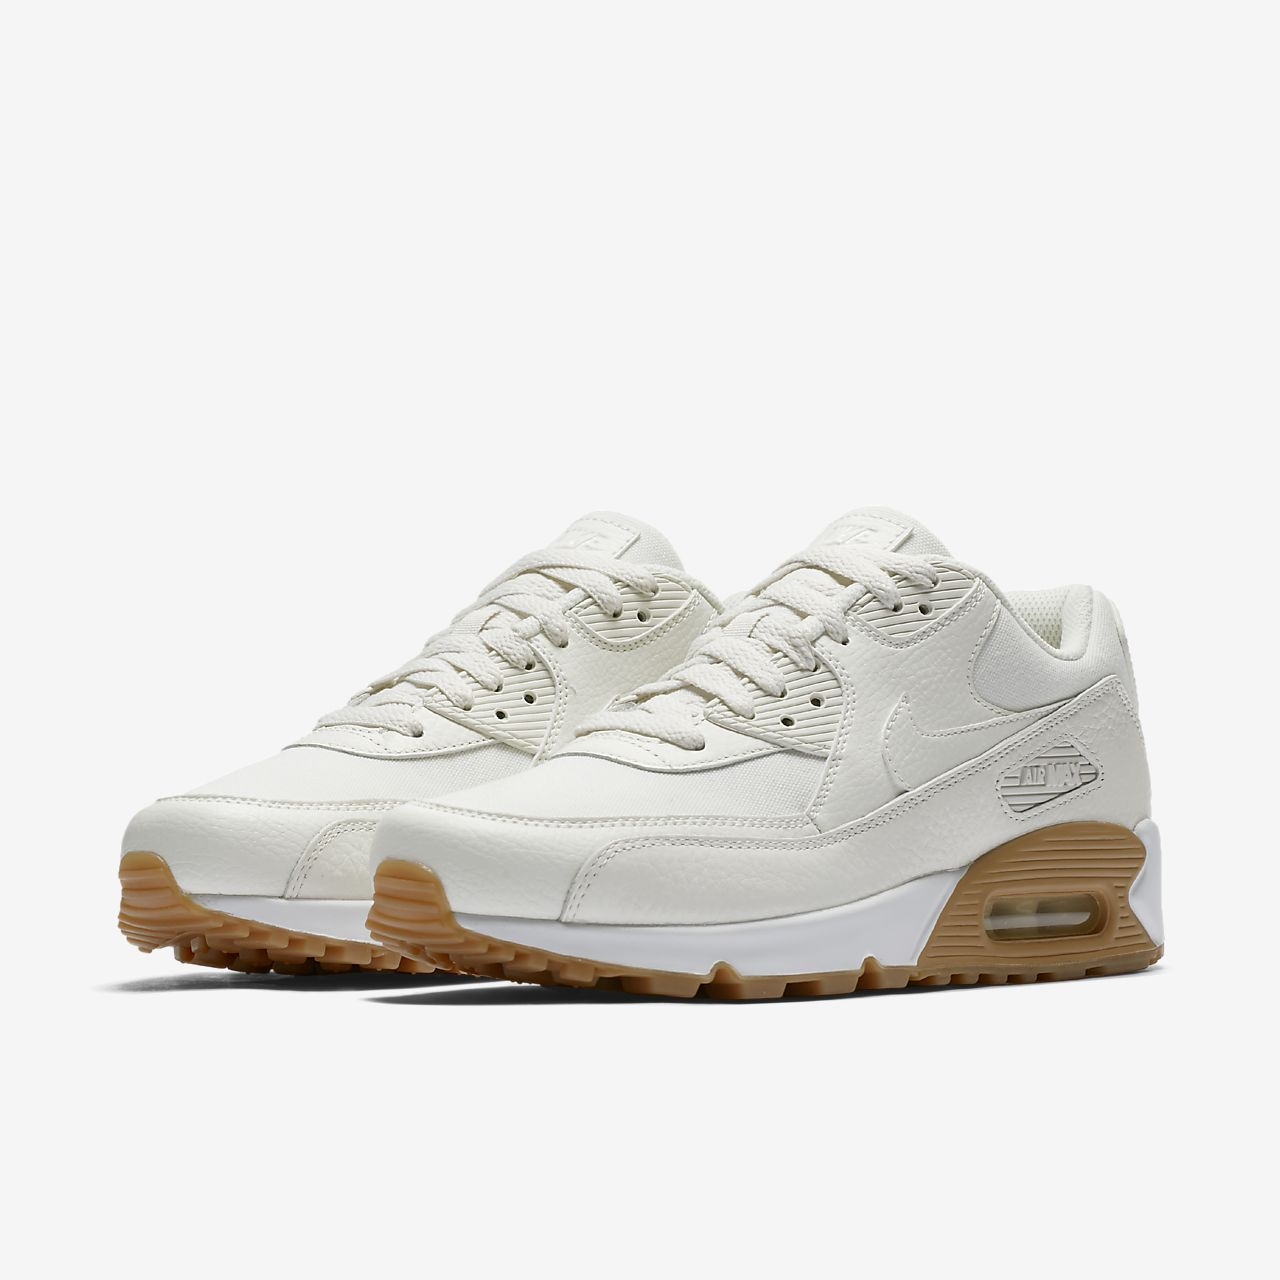 wmns nike air max 90 prem nz